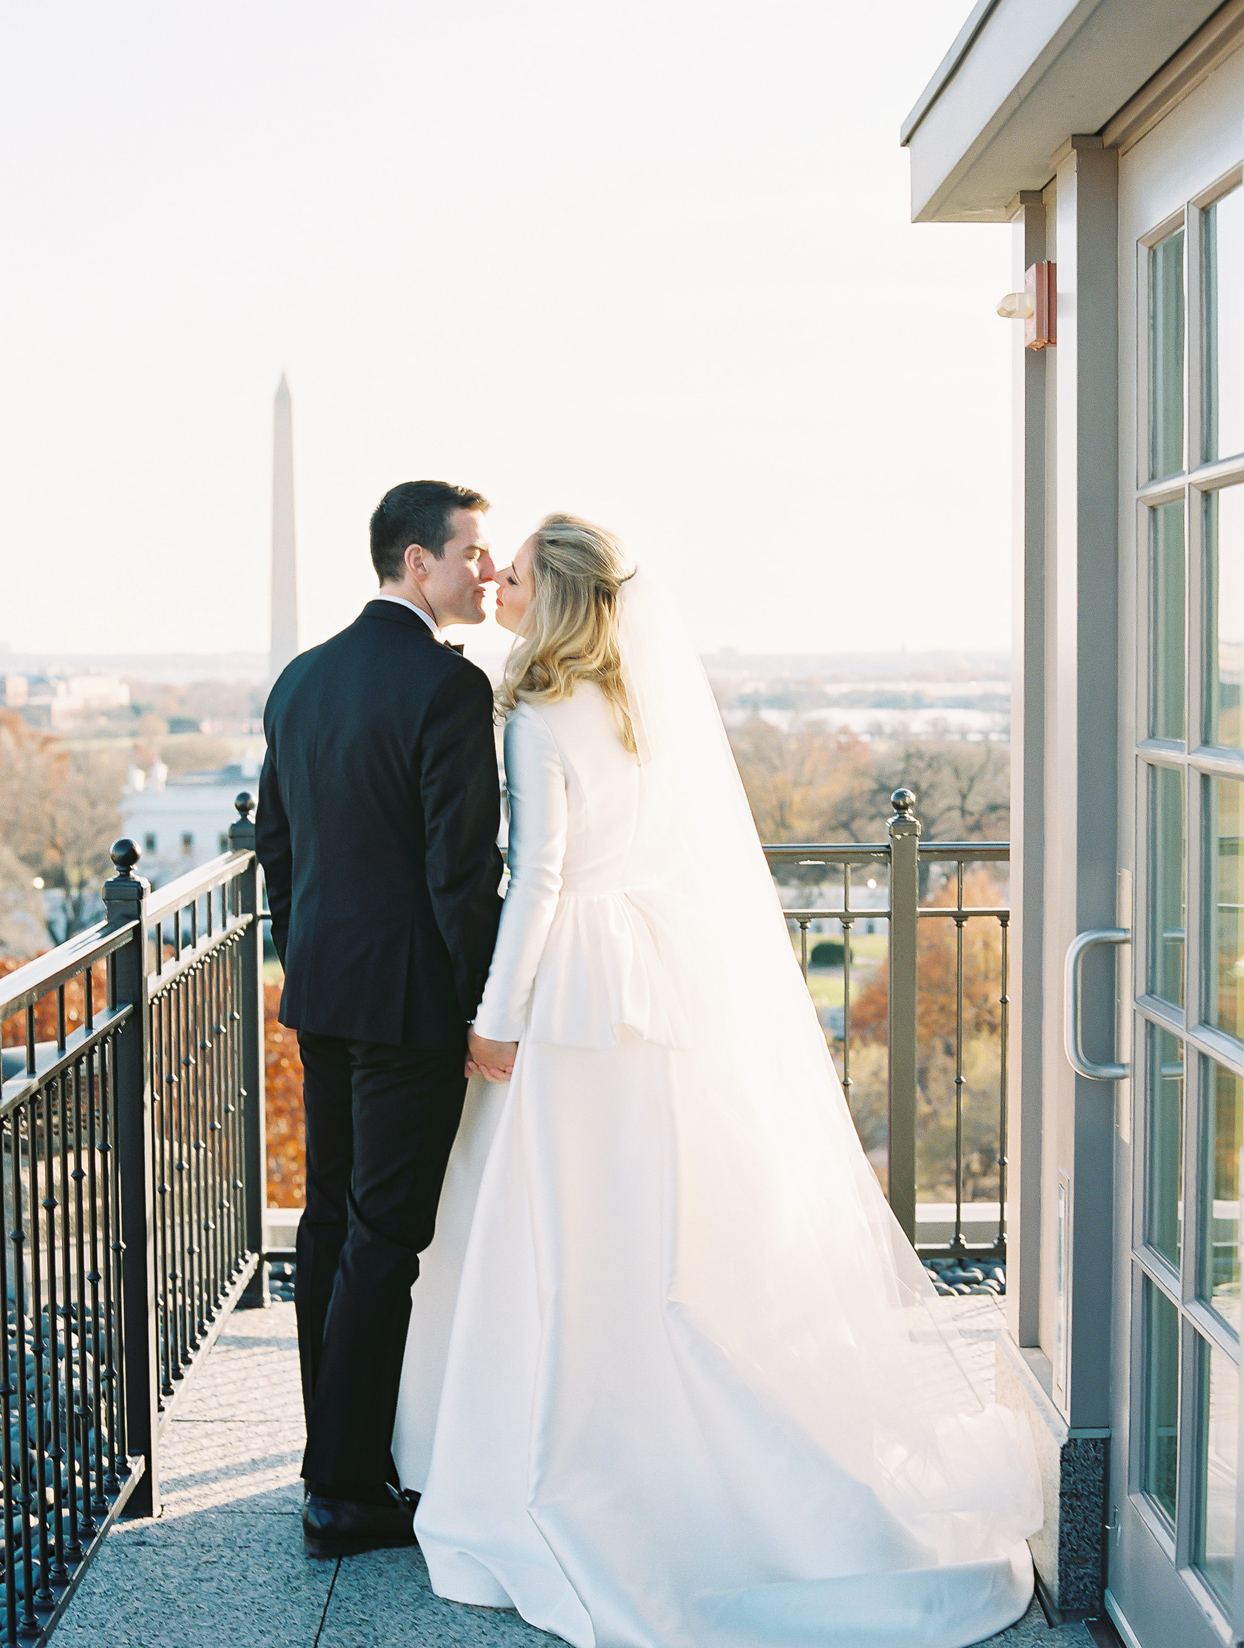 couple kiss on balcony with D.C. washington monument view